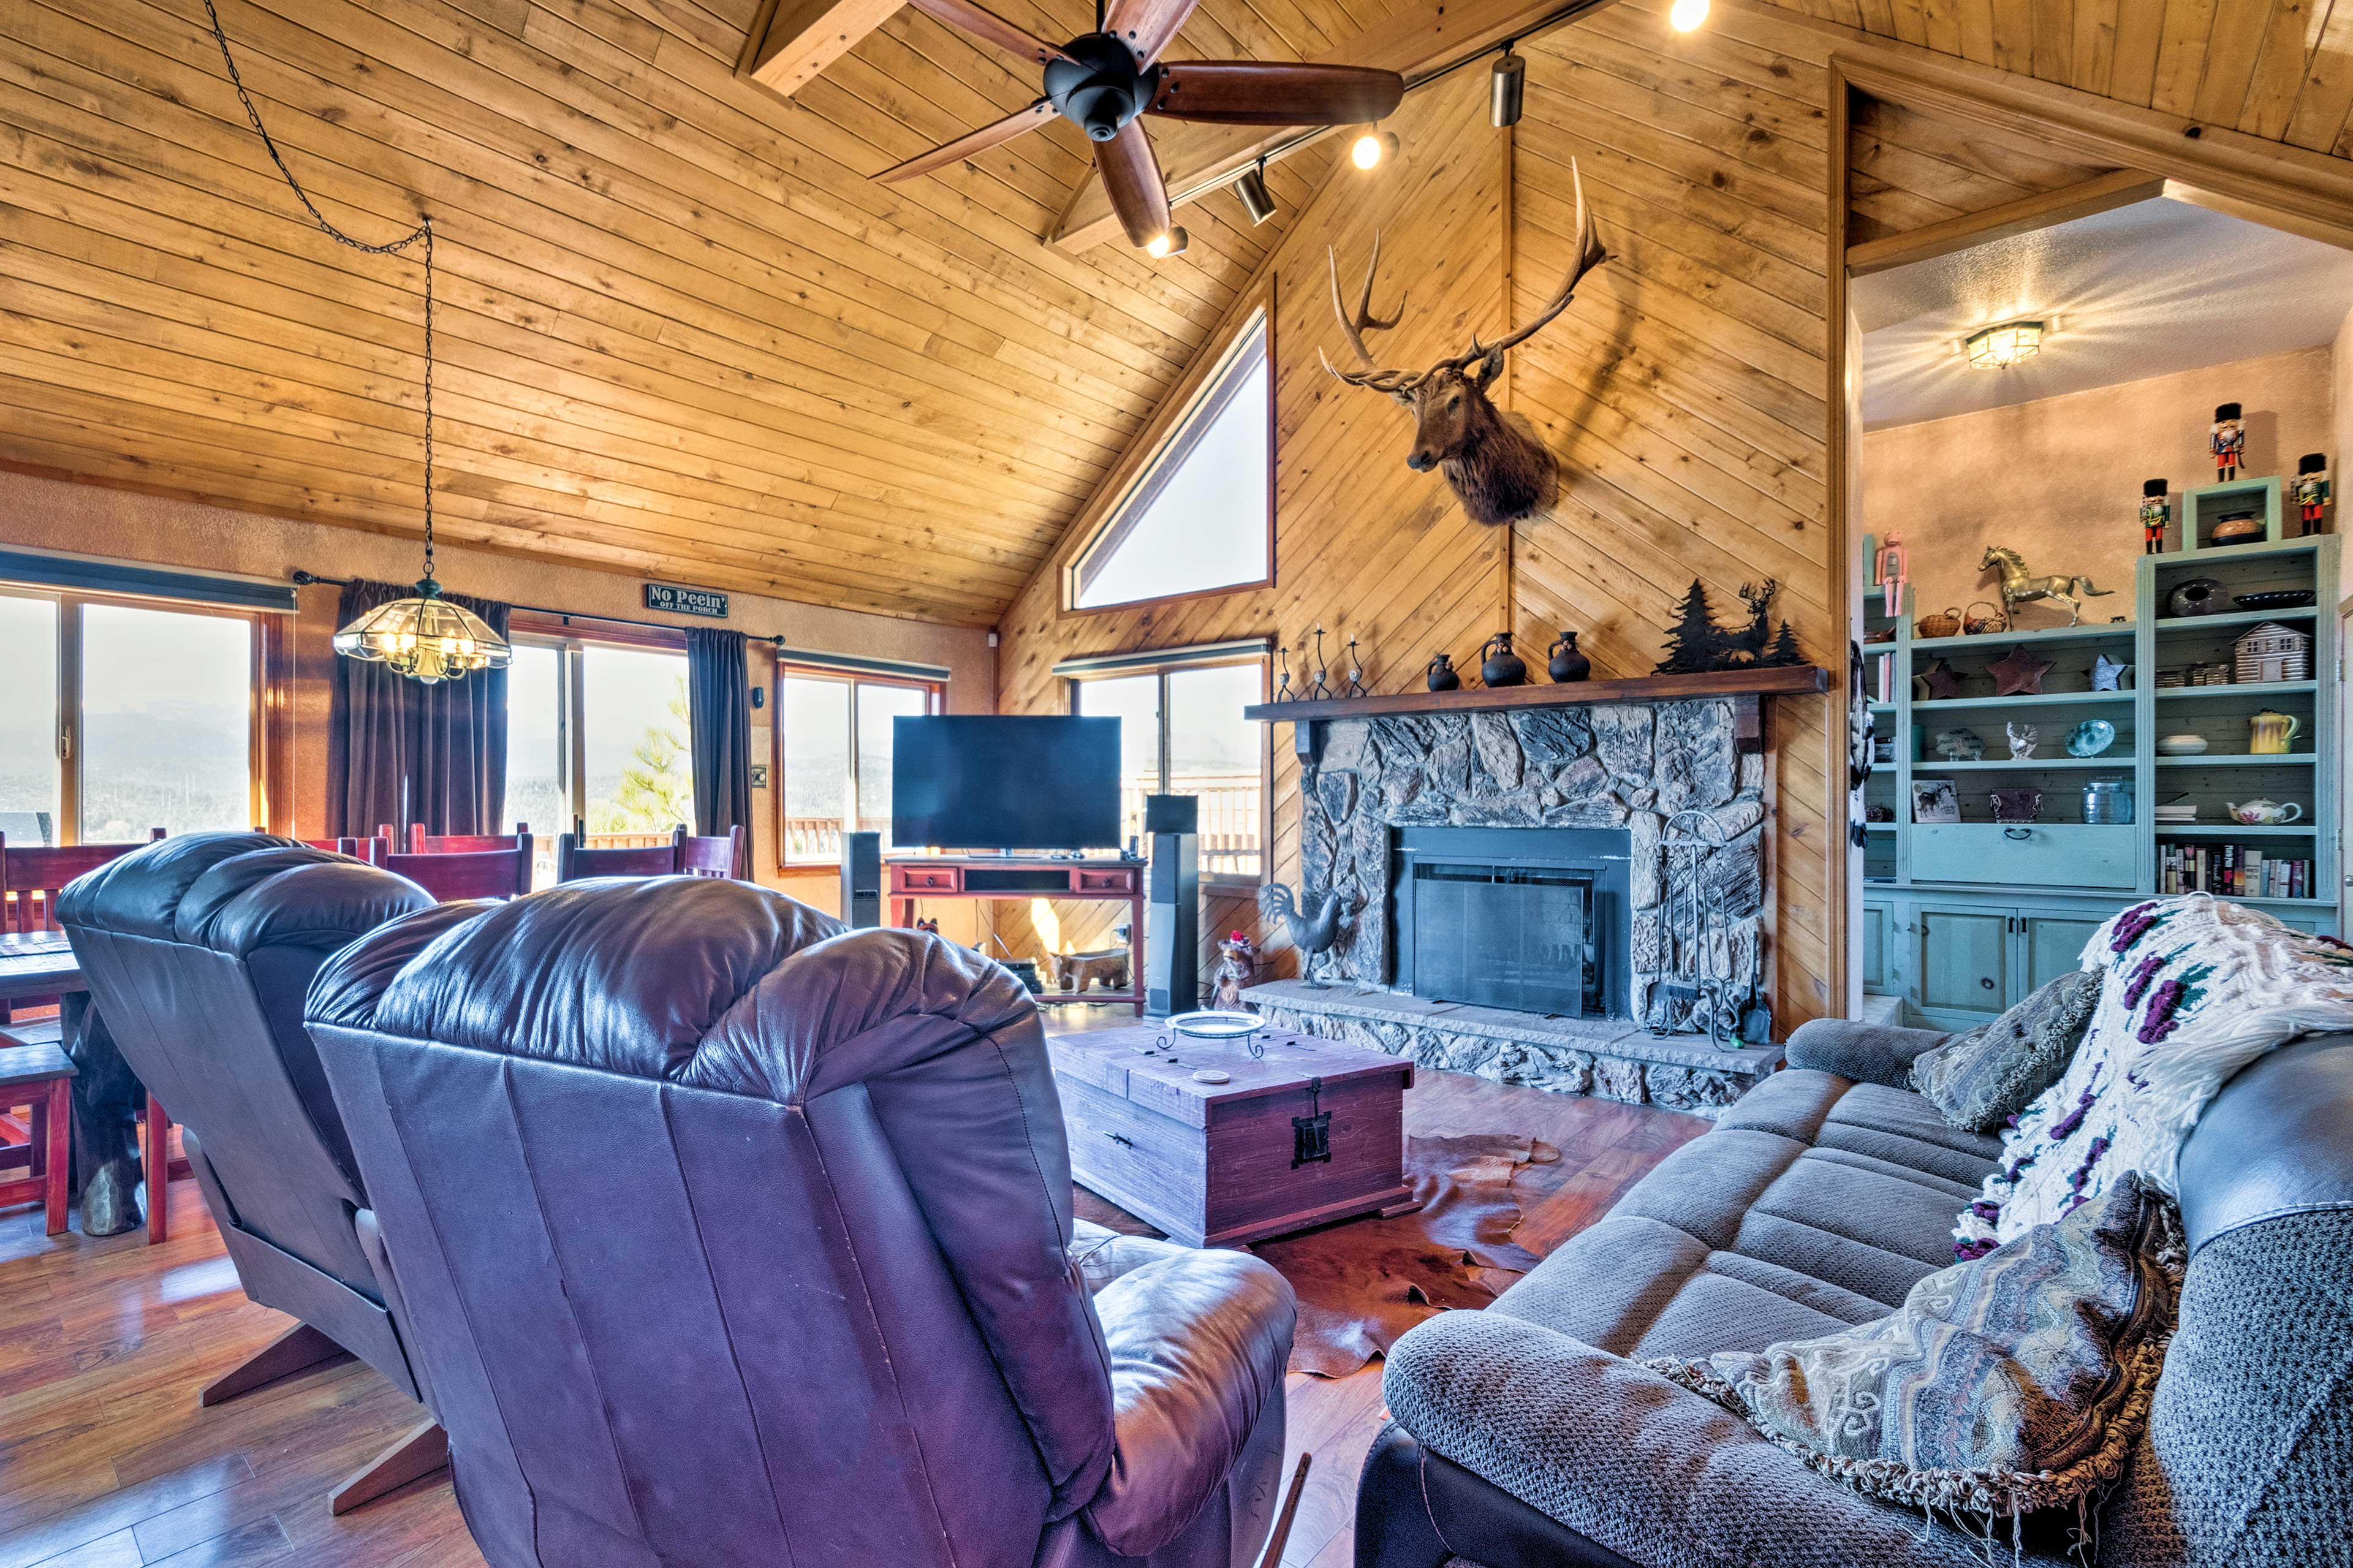 There are 4 bedrooms, 3 bathrooms and accommodations for 15 guests.